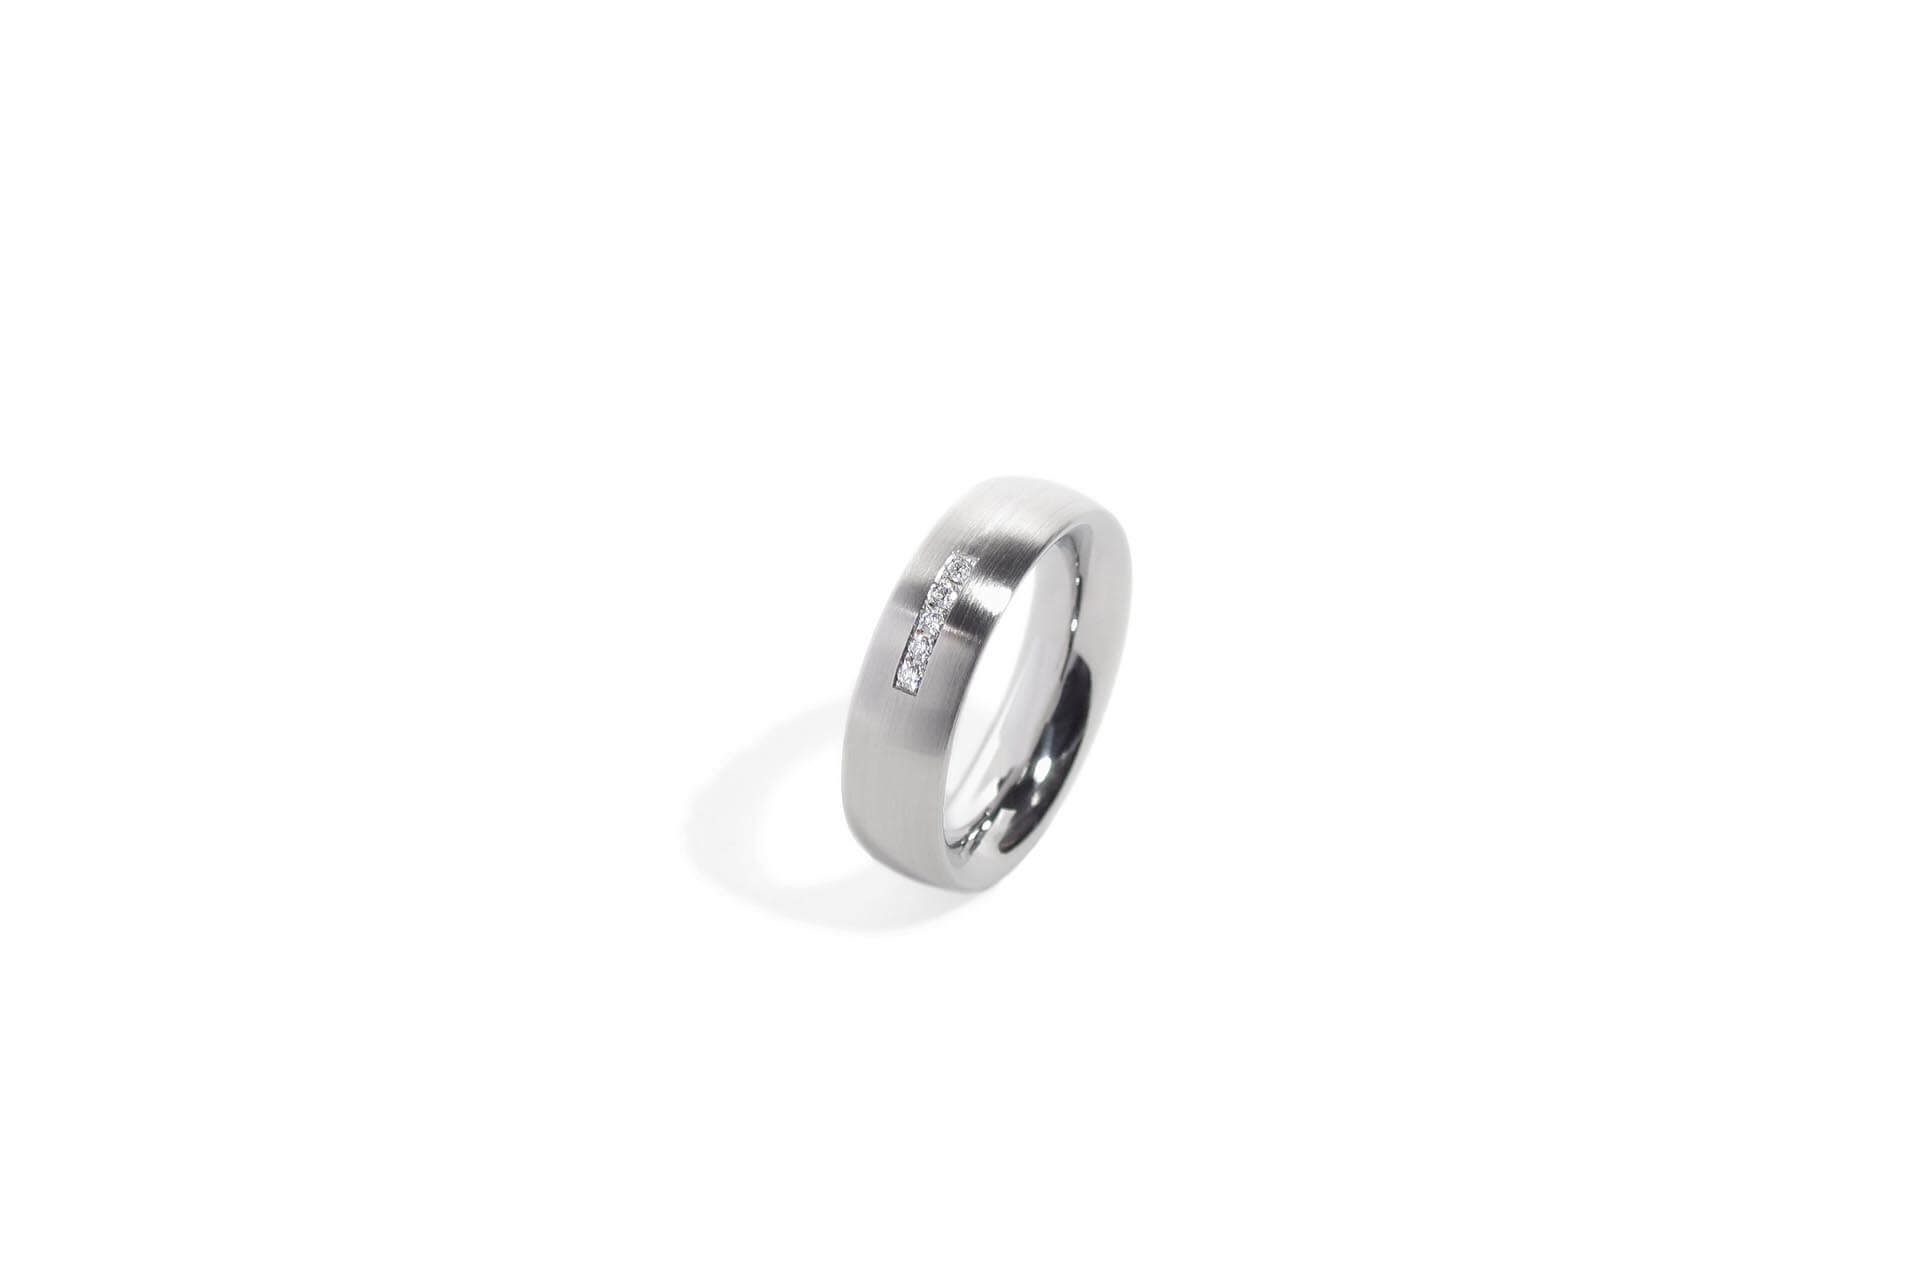 Stainless steel oval ring with 5 pave set diamonds. Top view. R.9.006